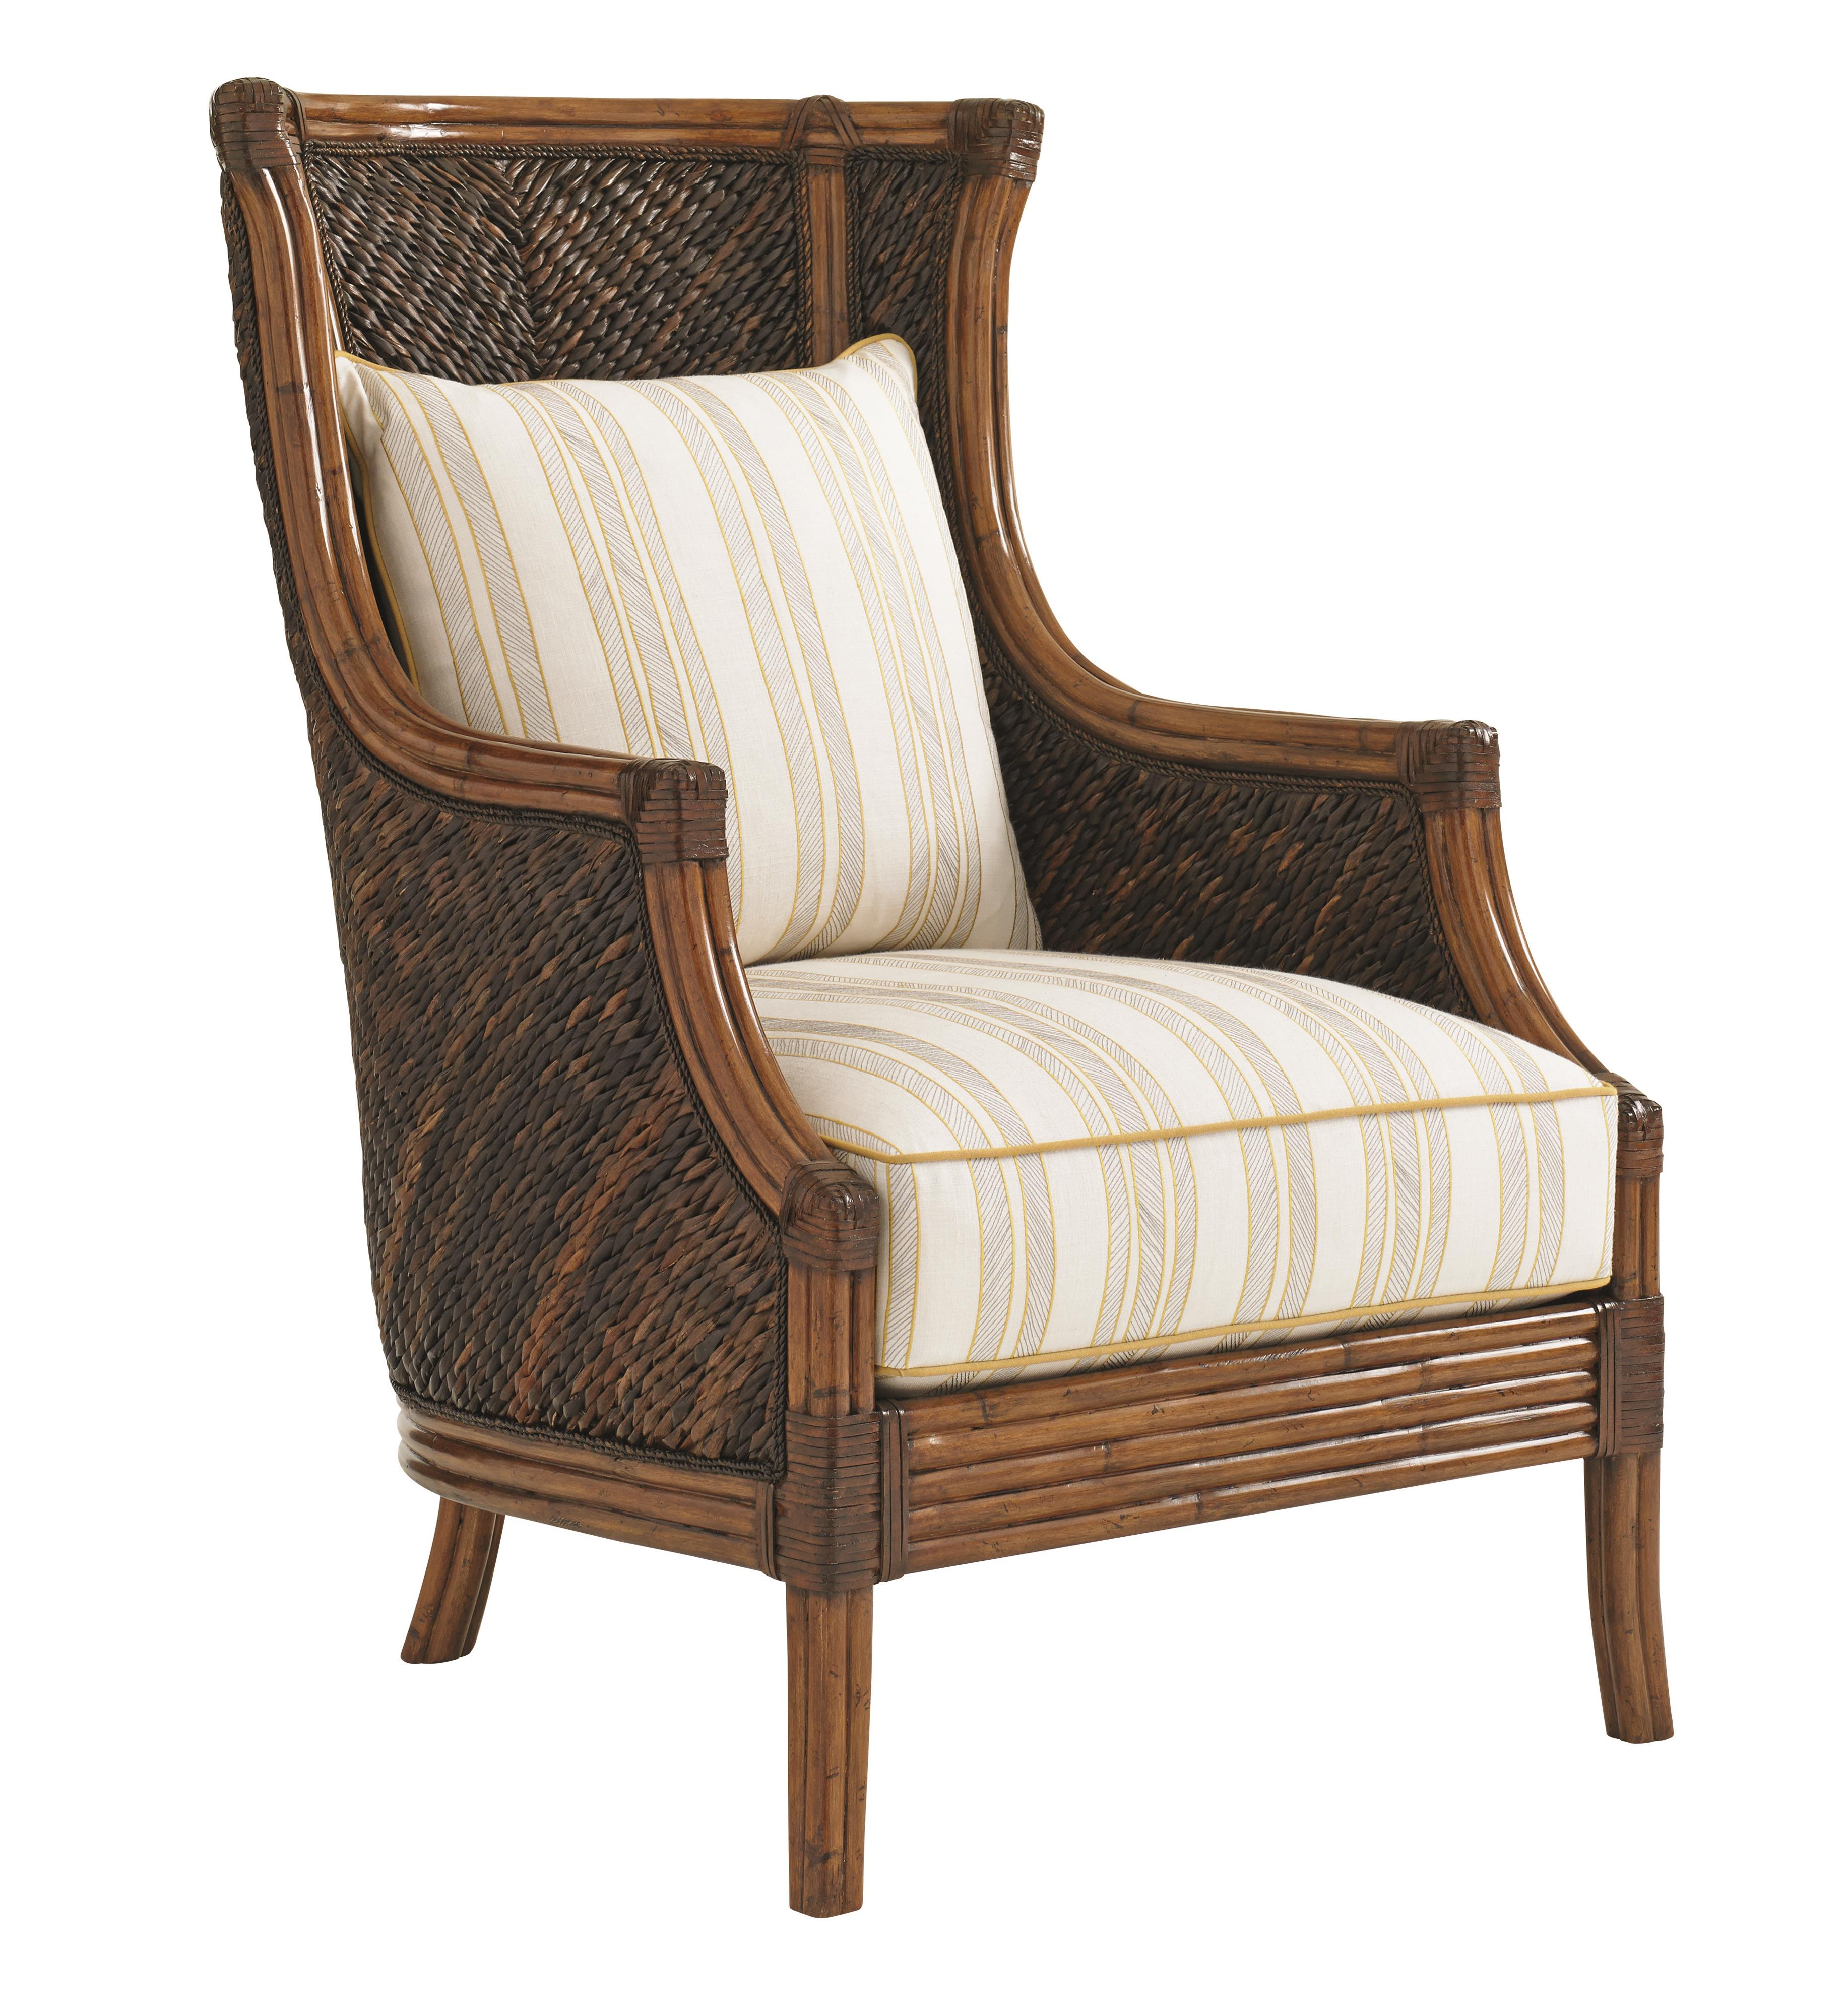 Island Estate Rum Beach Chair by Tommy Bahama Home at Baer's Furniture